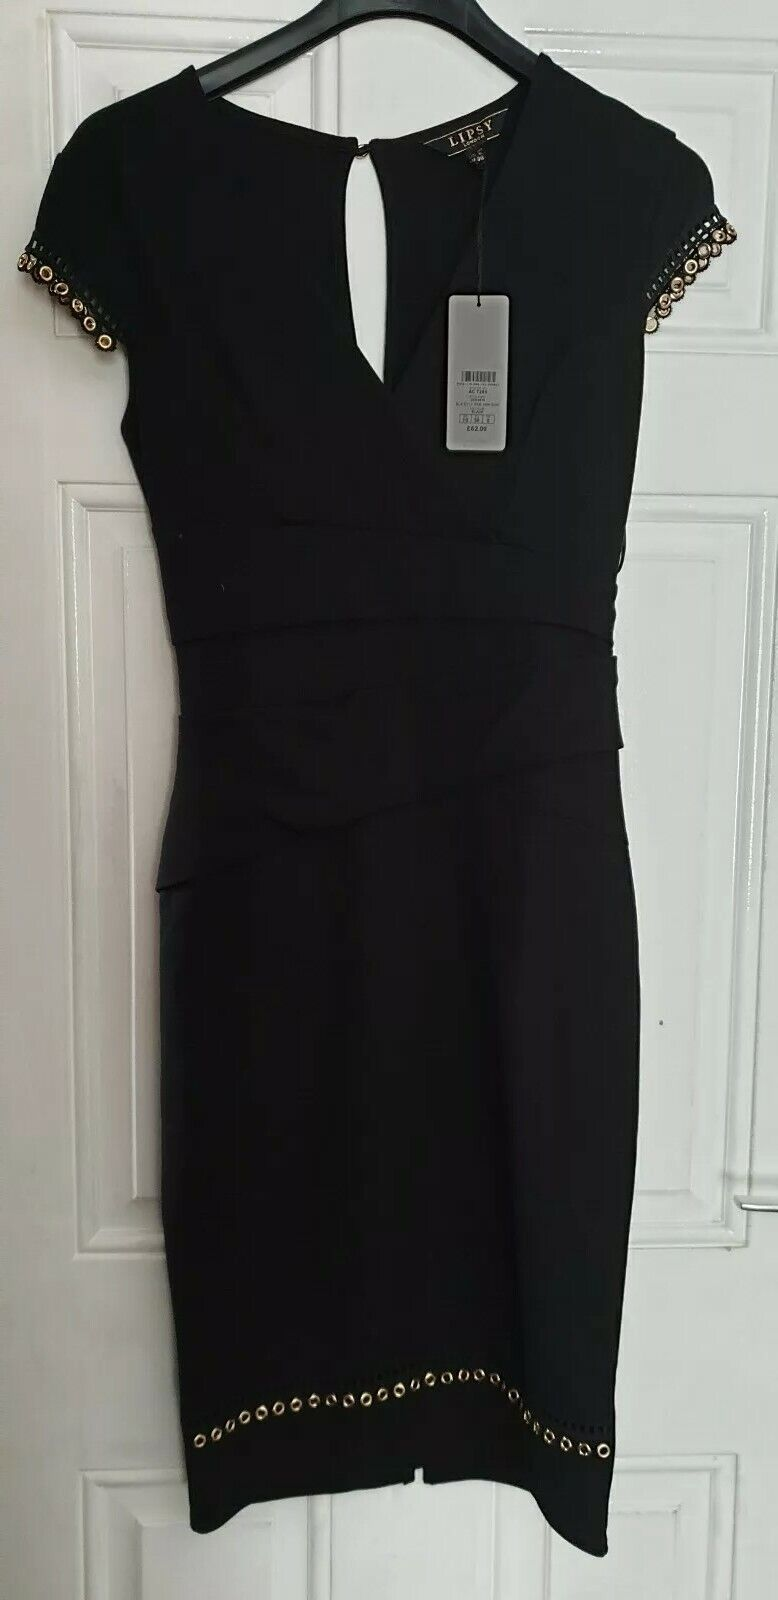 Da Donna Lipsy nero oro Dress London Lycra Lycra Lycra BNWT RRP  Taglia 034221